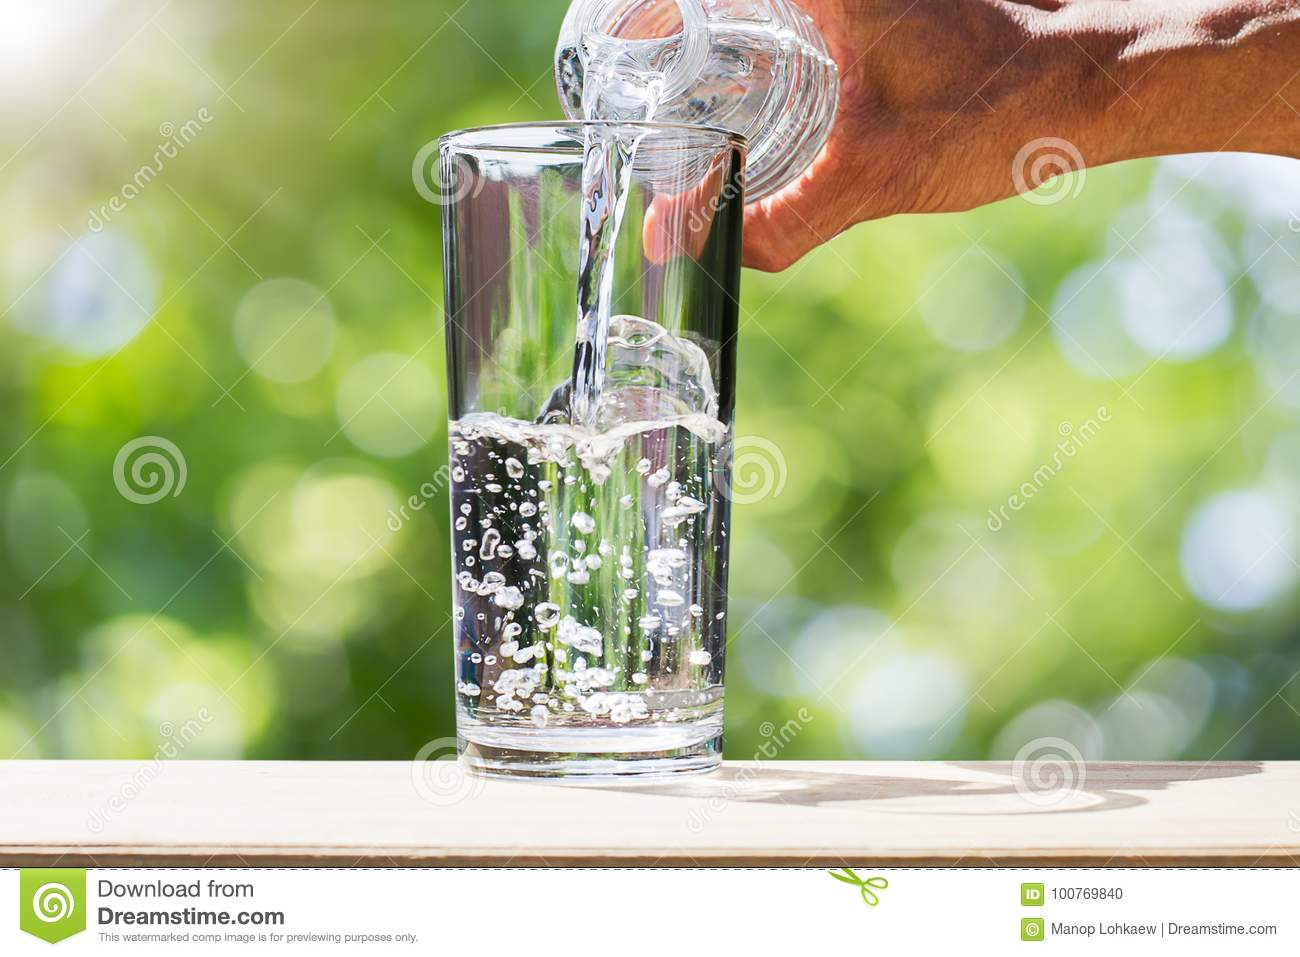 Man`s hand holding drinking water bottle water and pouring water into glass on wooden tabletop on blurred green bokeh background